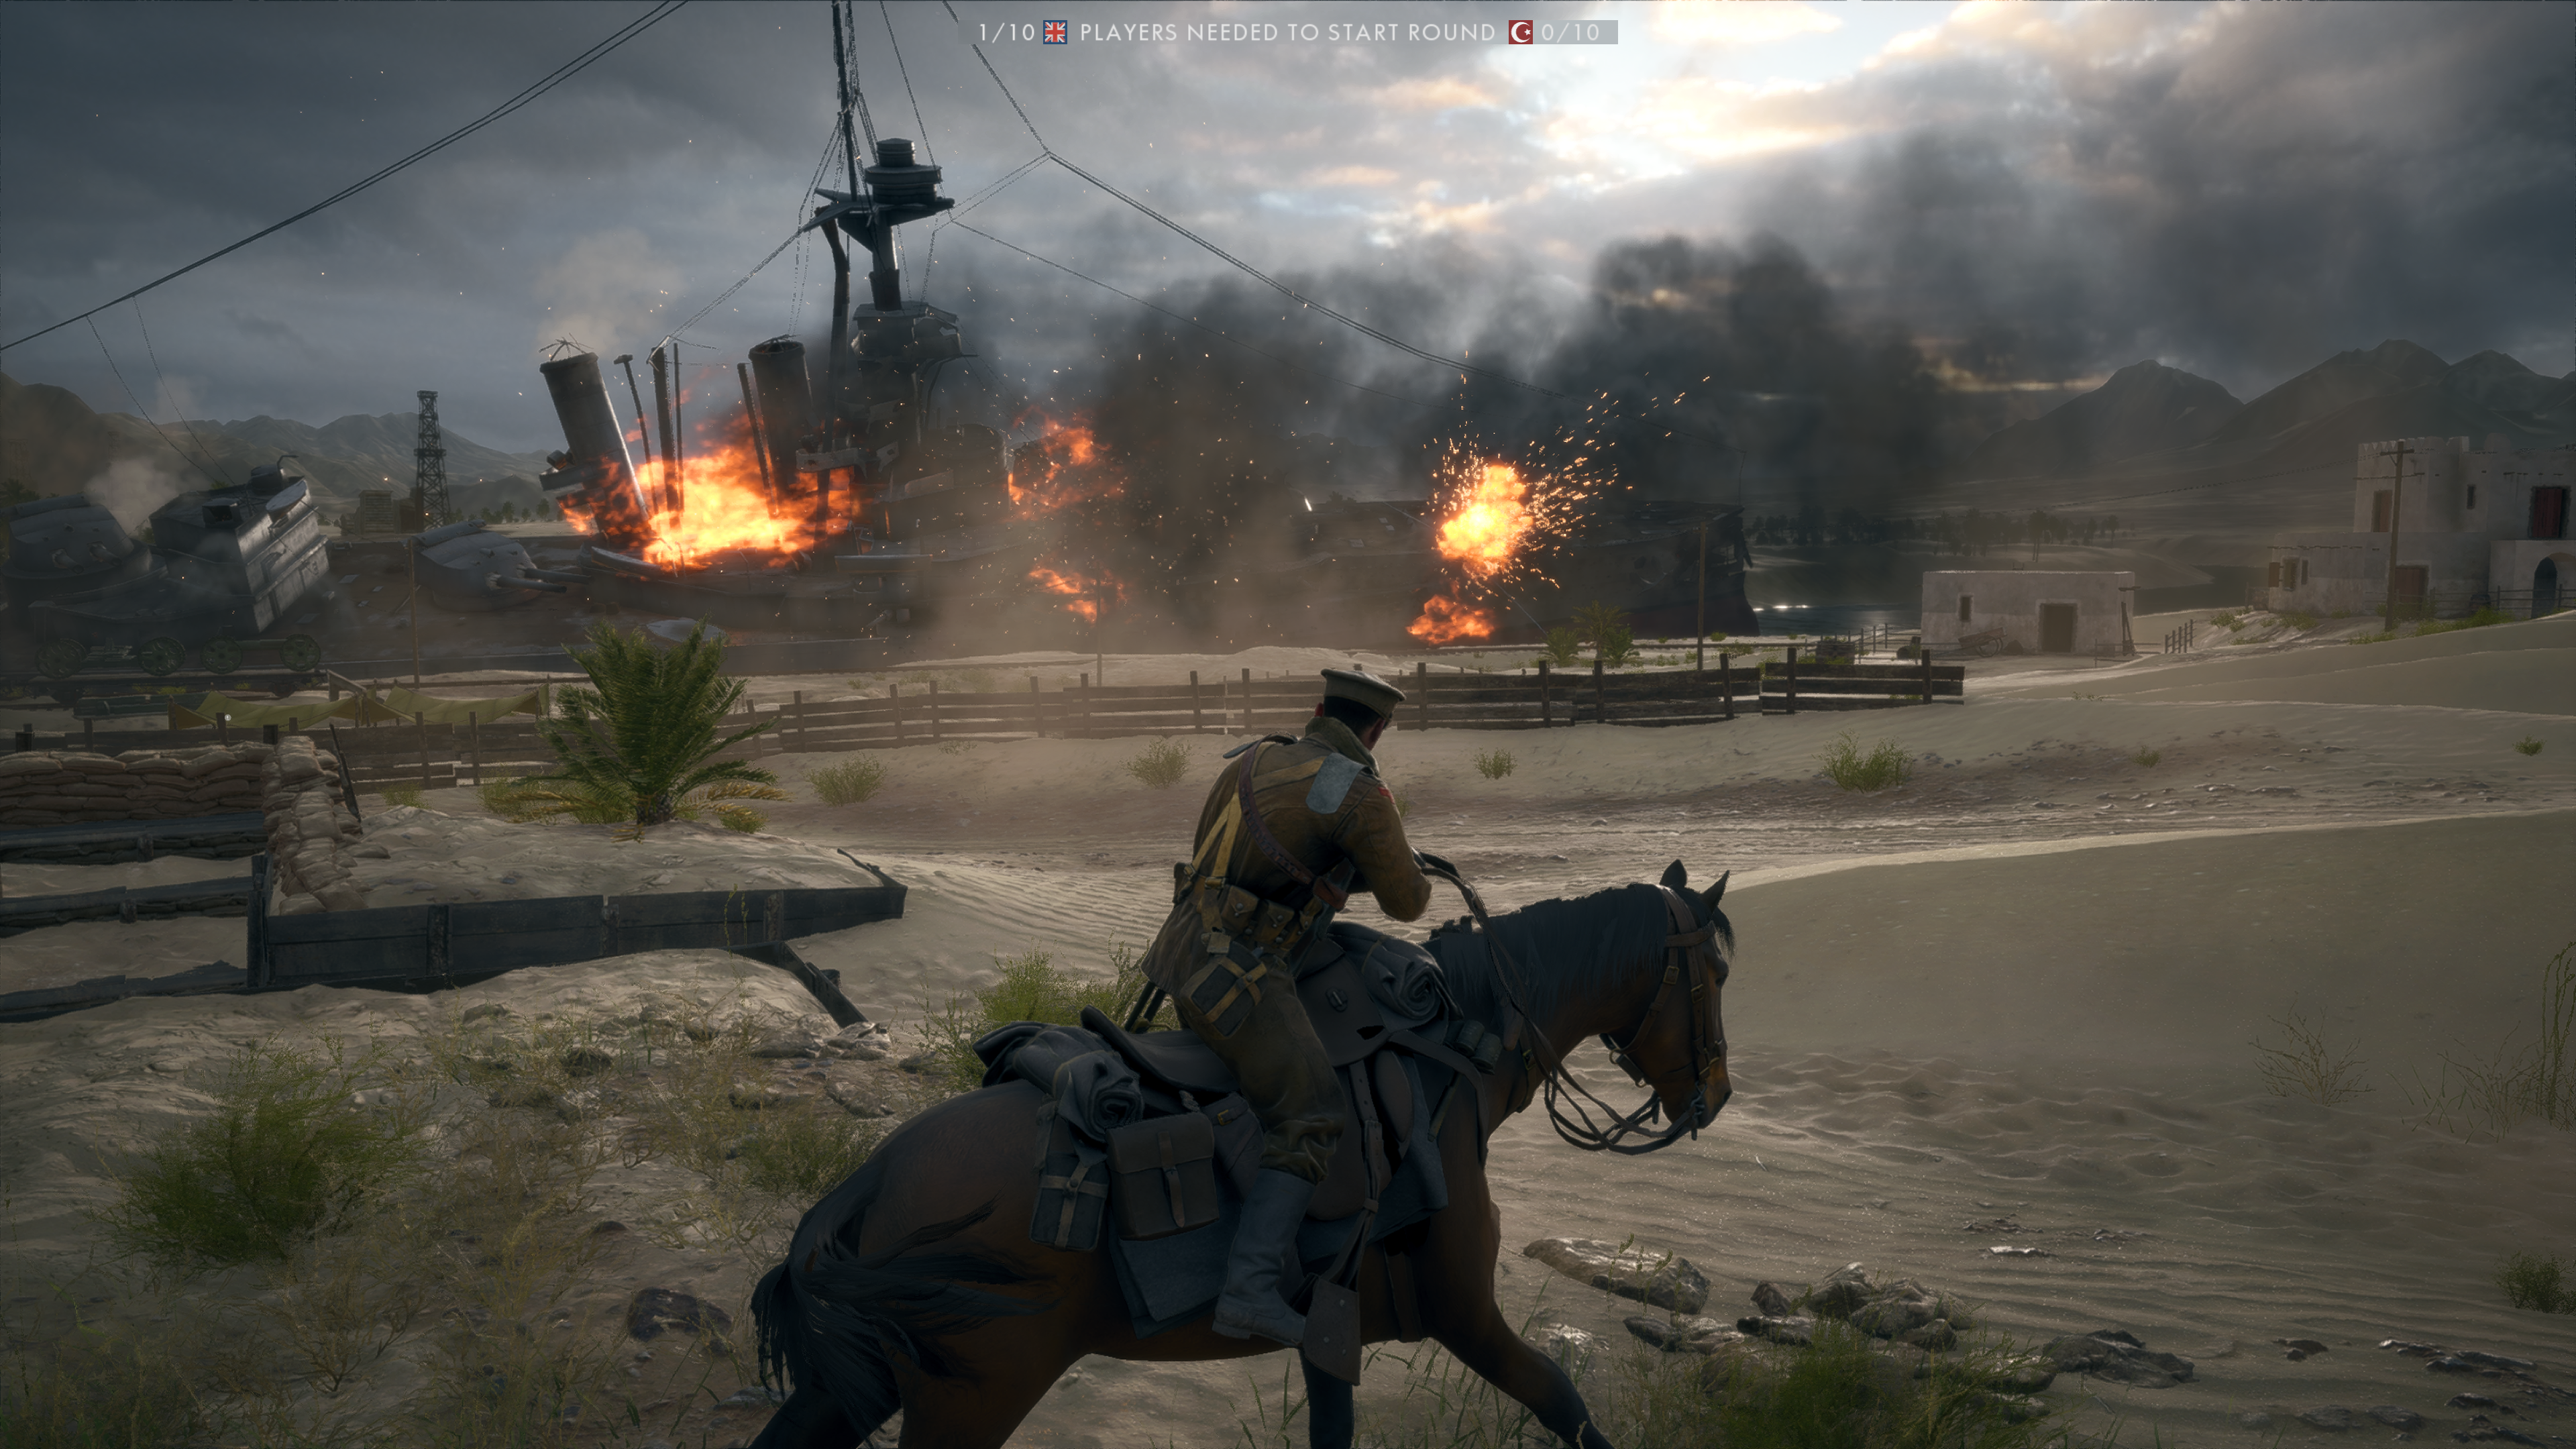 battlefield 1 review we found this year s top notch fps combat